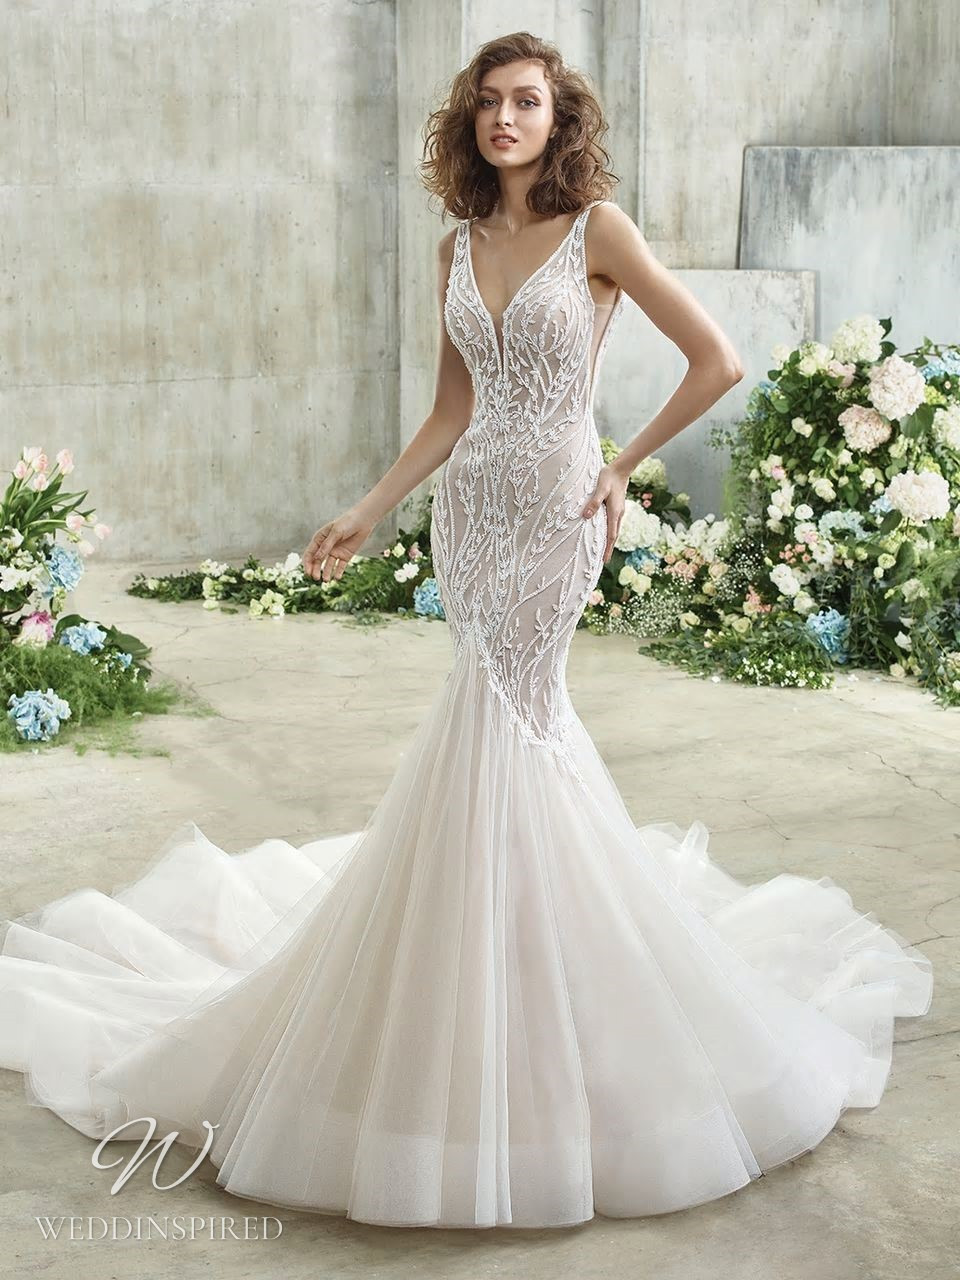 A Badgley Mischka gauzy mermaid wedding dress with a tulle skirt, beading and a v neckline